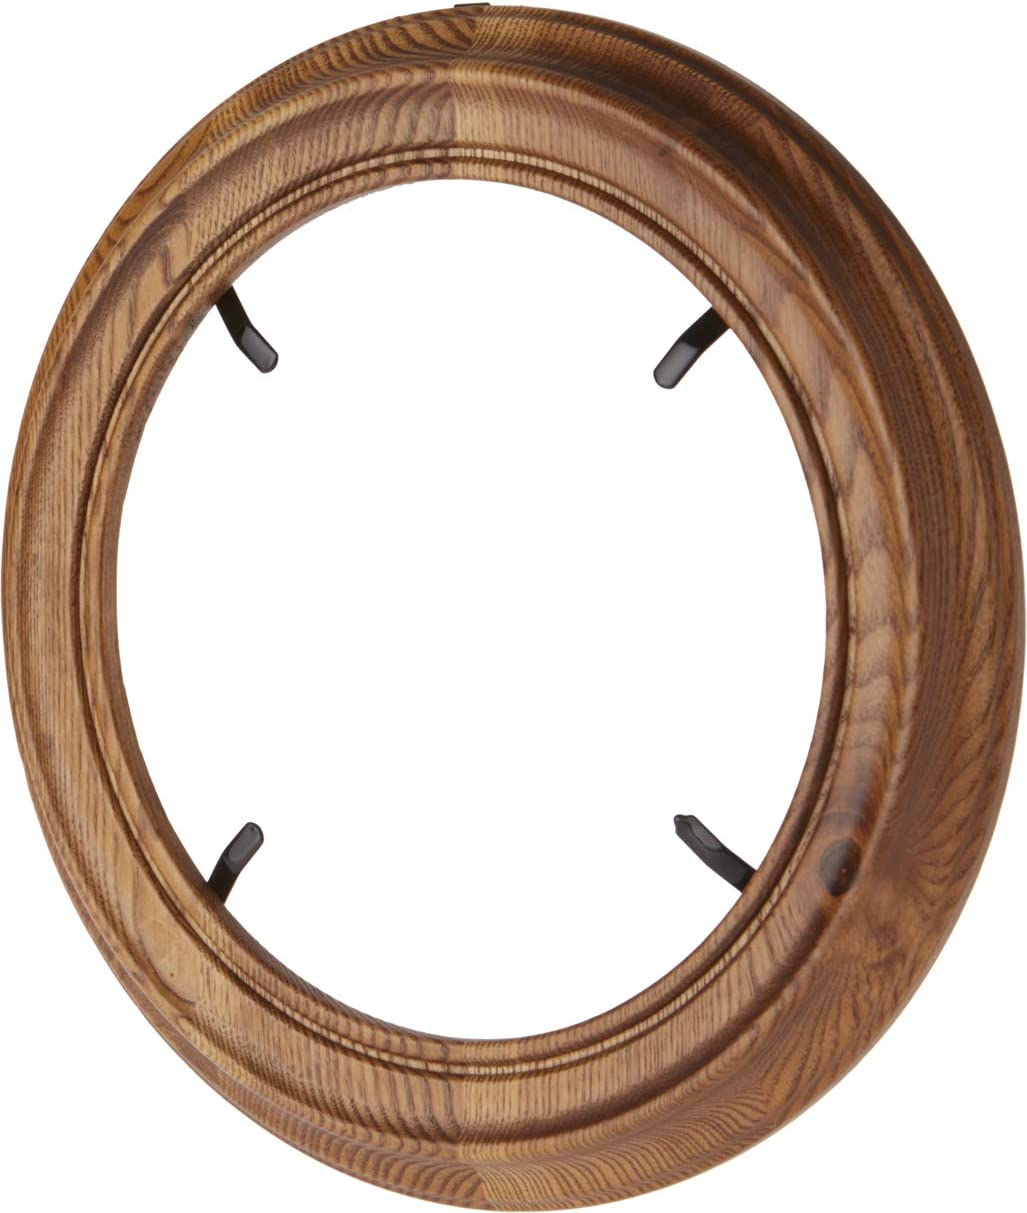 Bard's Red Oak Wall Mountable Plate H W Ranking TOP5 Latest item Frame 11.25